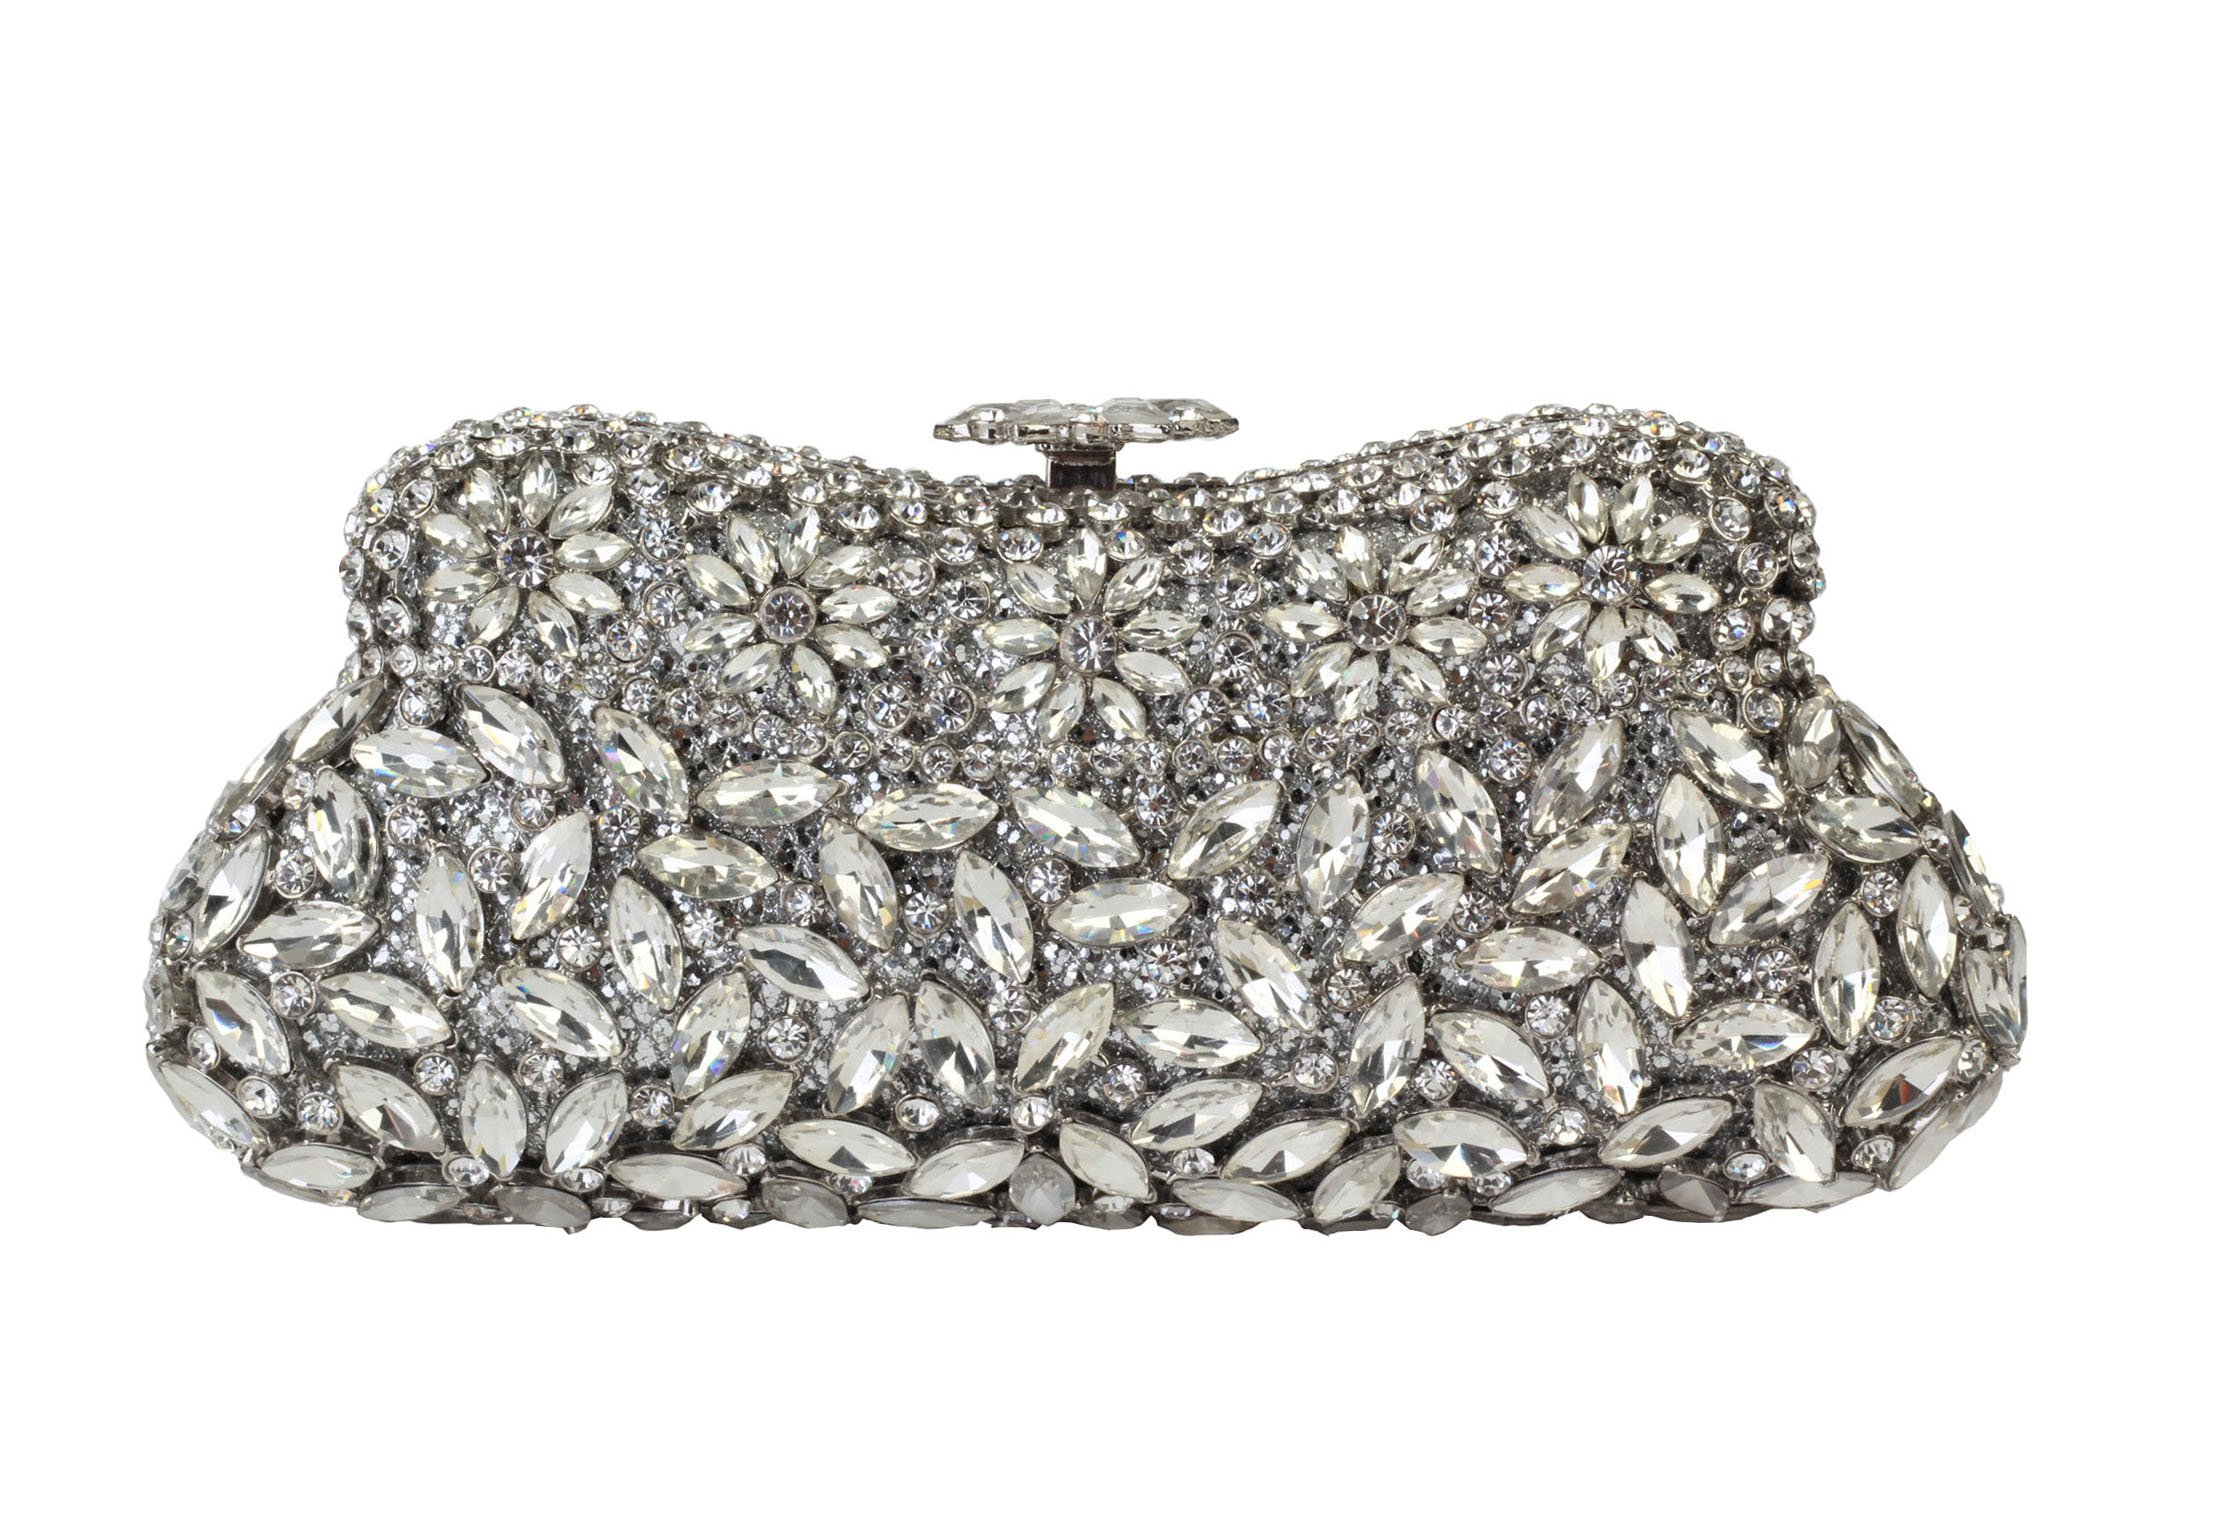 Yilongsheng Ladies Classic Hot selling Prom Evening Bags With Crystal L-5073 (Silver) by YILONGSHENG